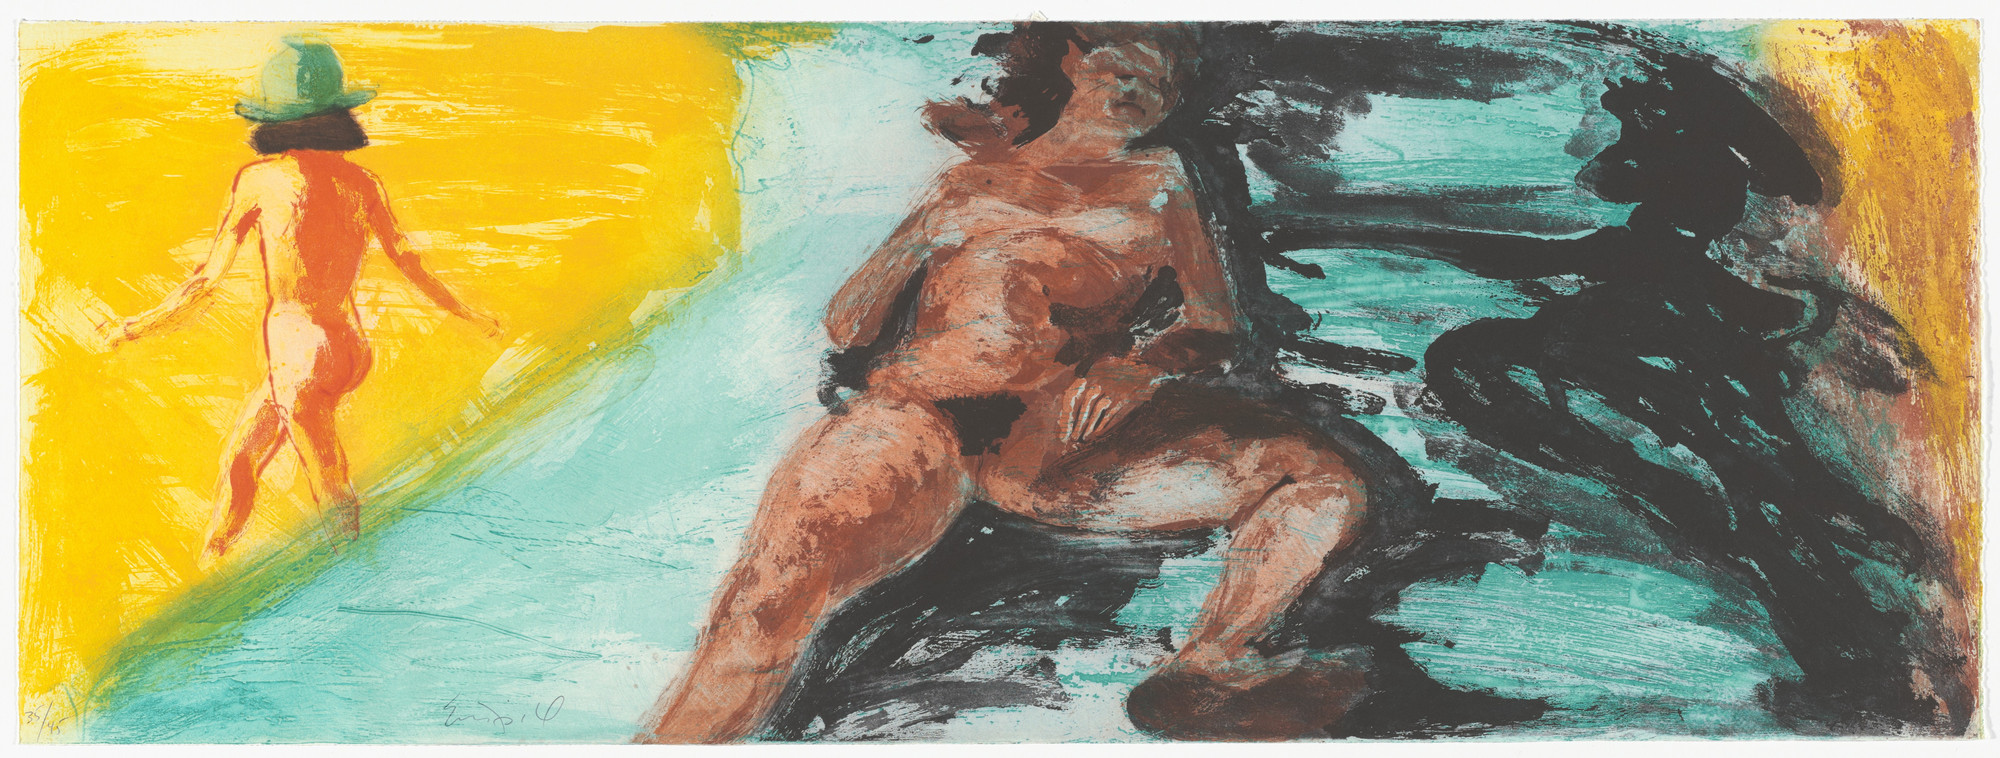 Eric Fischl. Untitled from Floating Islands. 1985